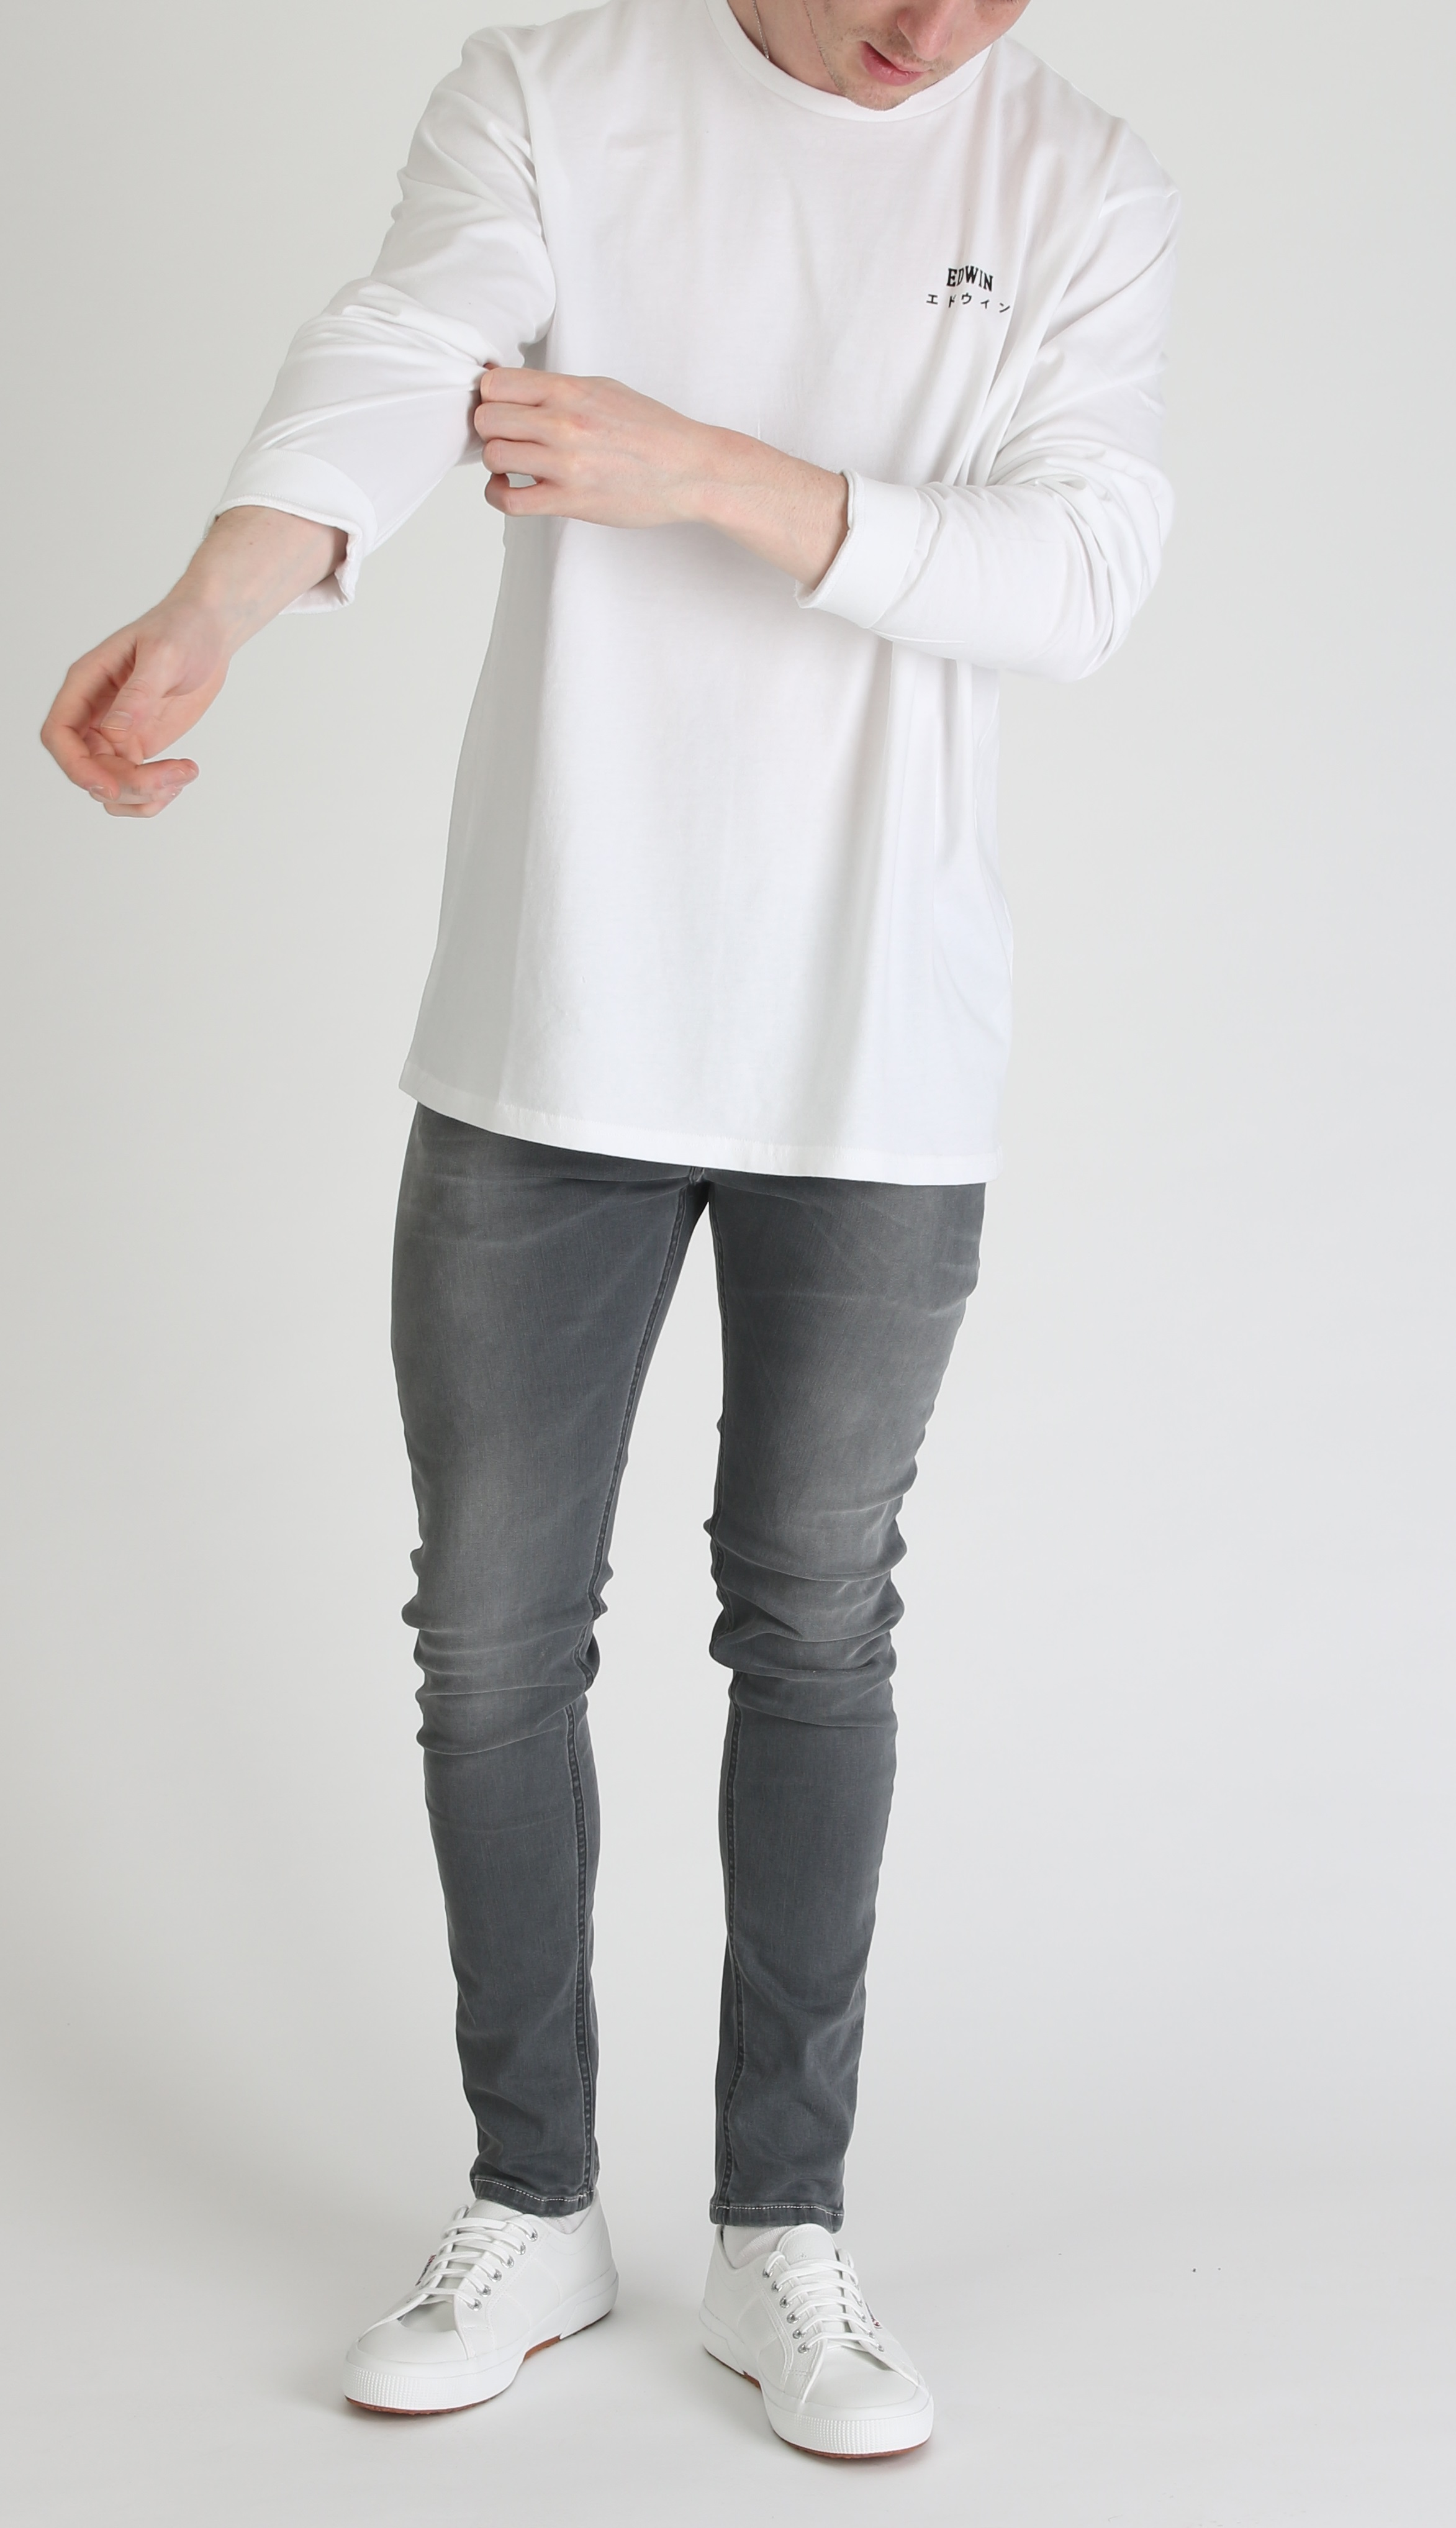 2ee74323faeb Jondrill is the new skinny fit from Replay and is perfect for those looking  to upgrade their style without sacrificing comfort. Constructed from a  cotton